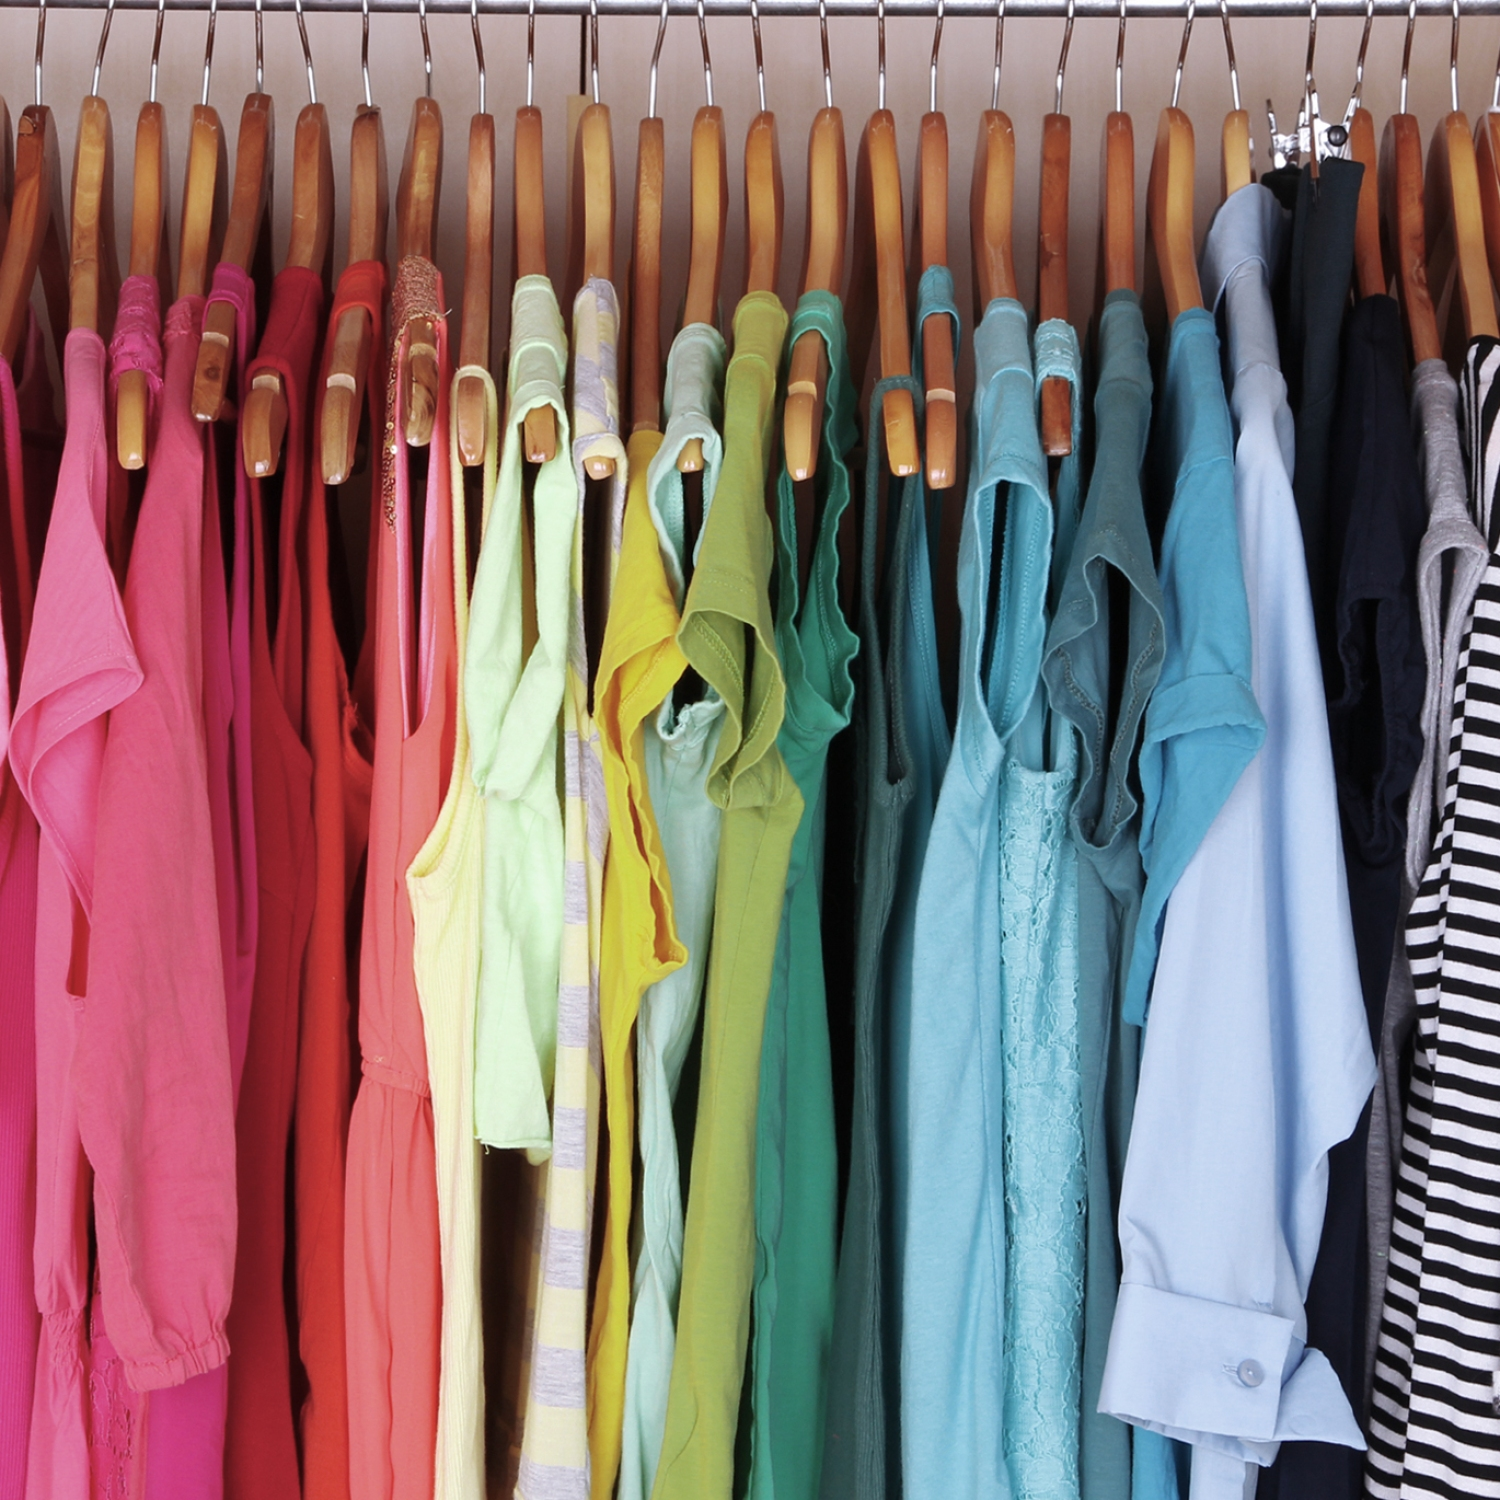 Rainbow organized clothes in a closet